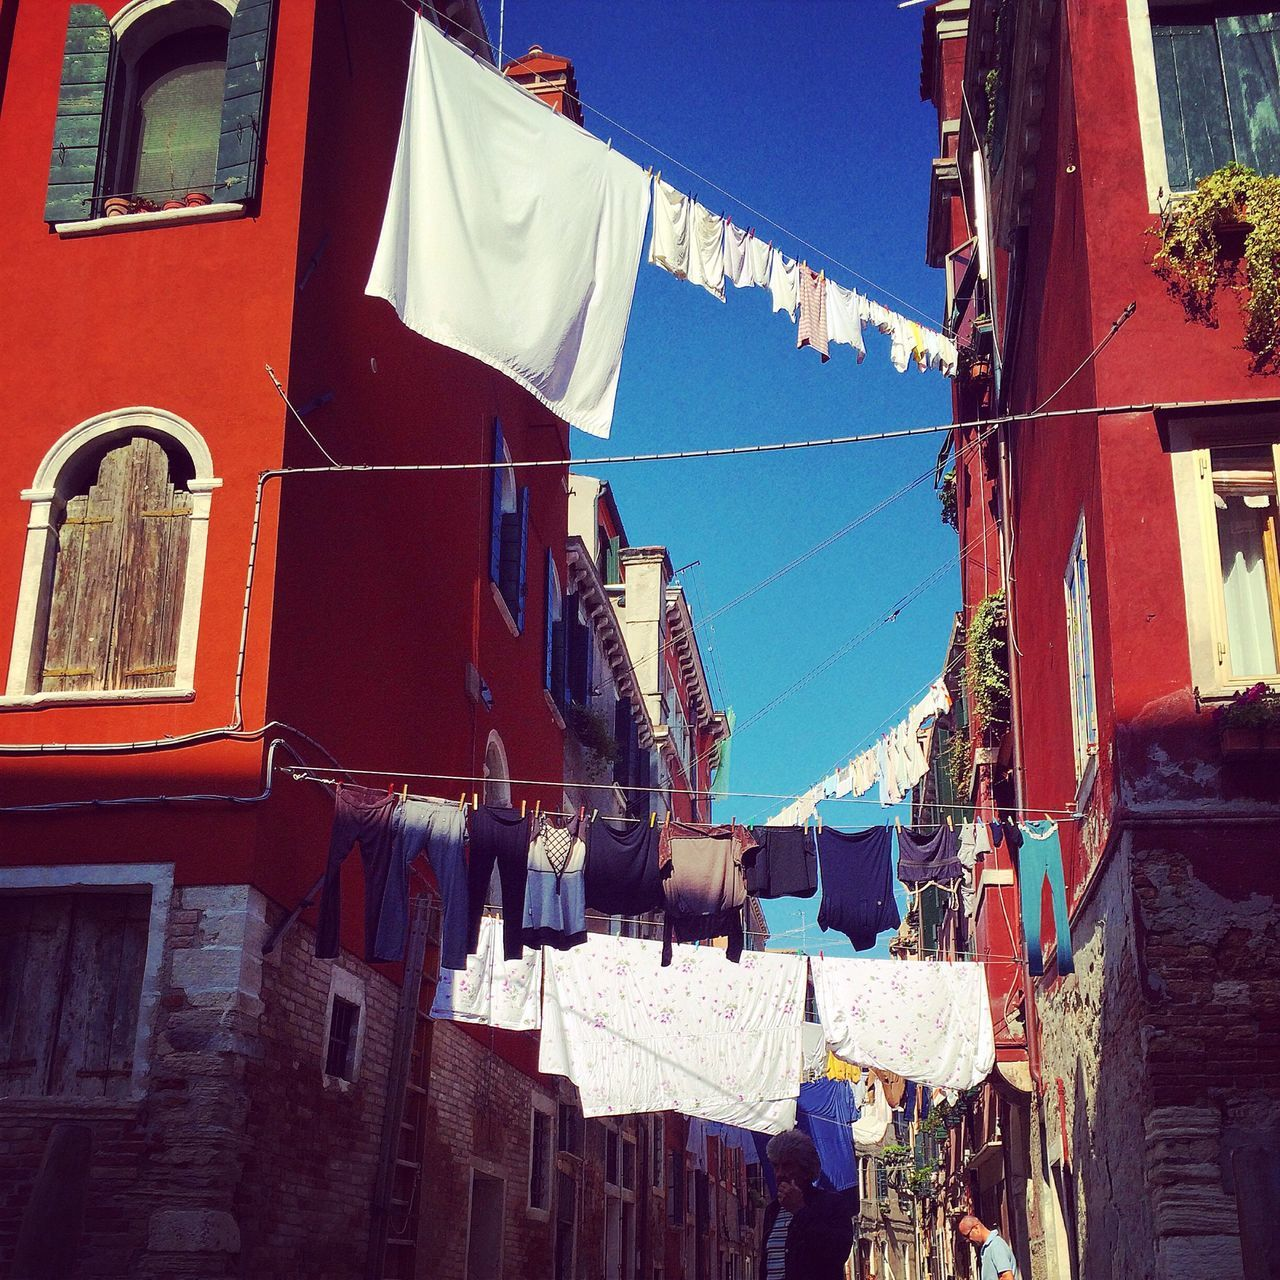 Low Angle View Of Clothes Lines Between Buildings Against Blue Sky